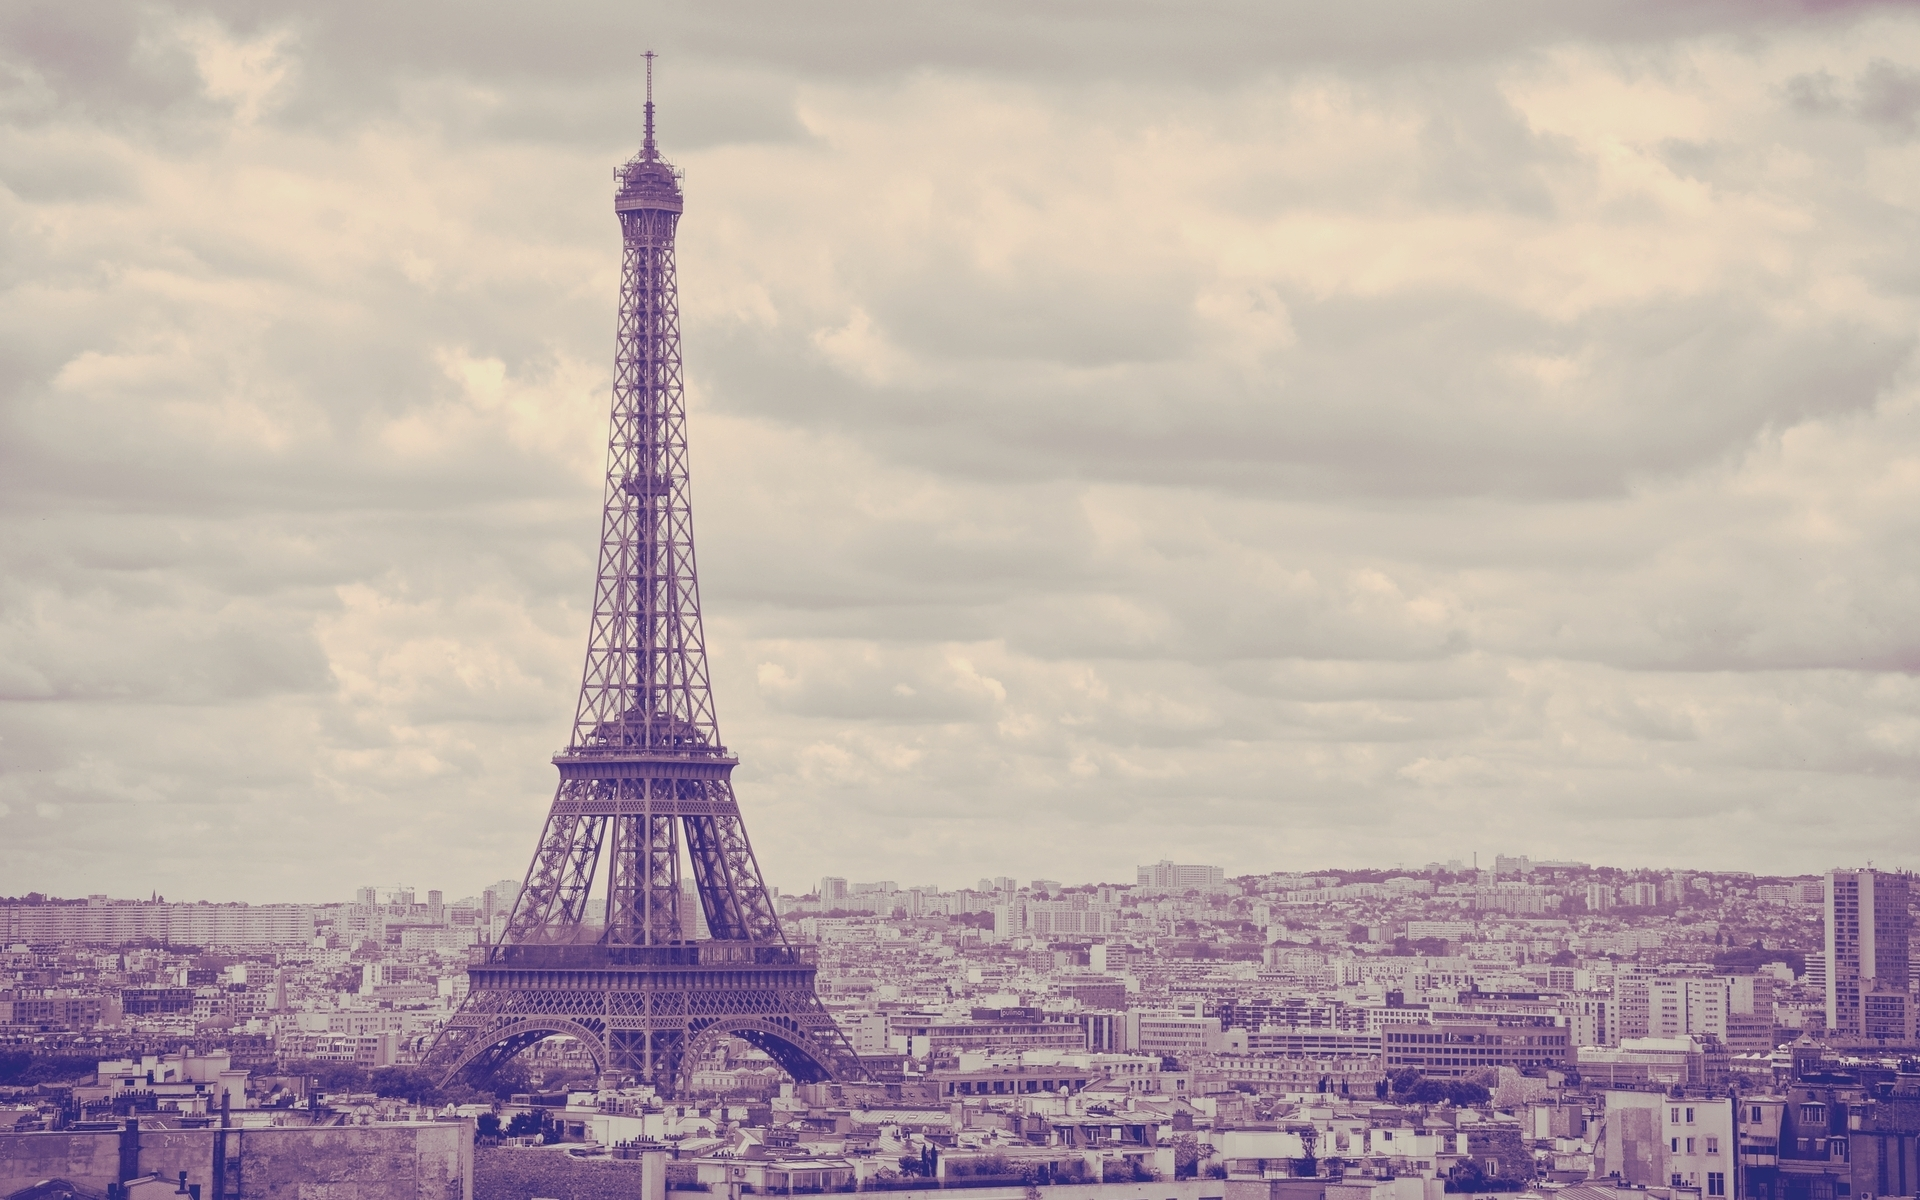 City eiffel tower paris france wallpaper 1920x1200 - Paris eiffel tower desktop wallpaper ...